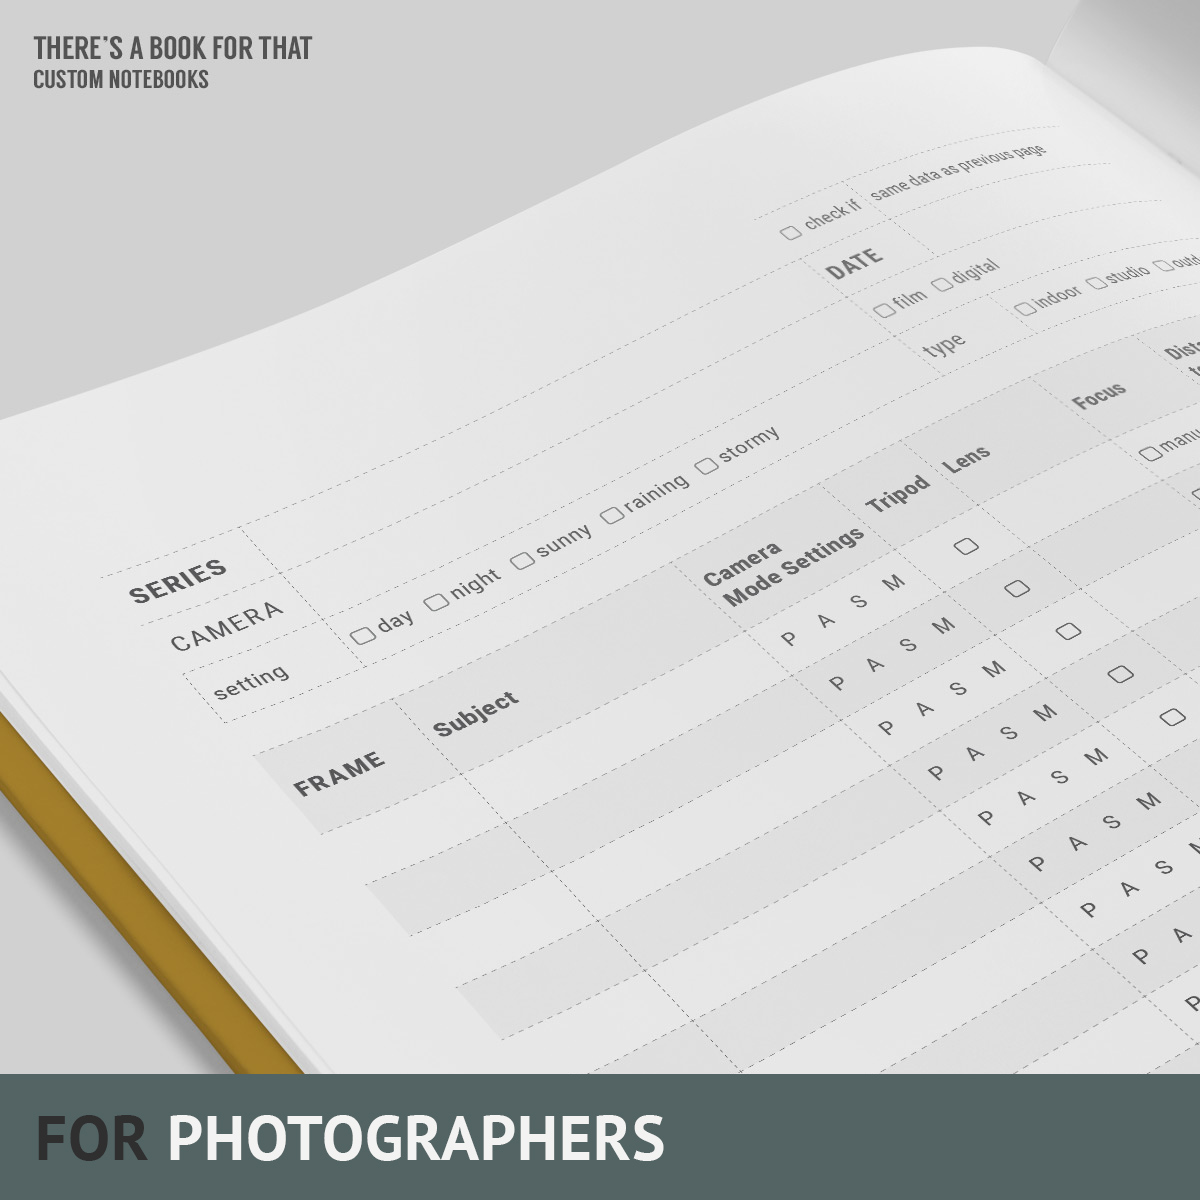 A photographers notebook including a wonderful, easy-to-fill table, from amera mode to lens, from focus to distance, ISO, exposure compensation, aperture, shutter, white balance… whatnot.